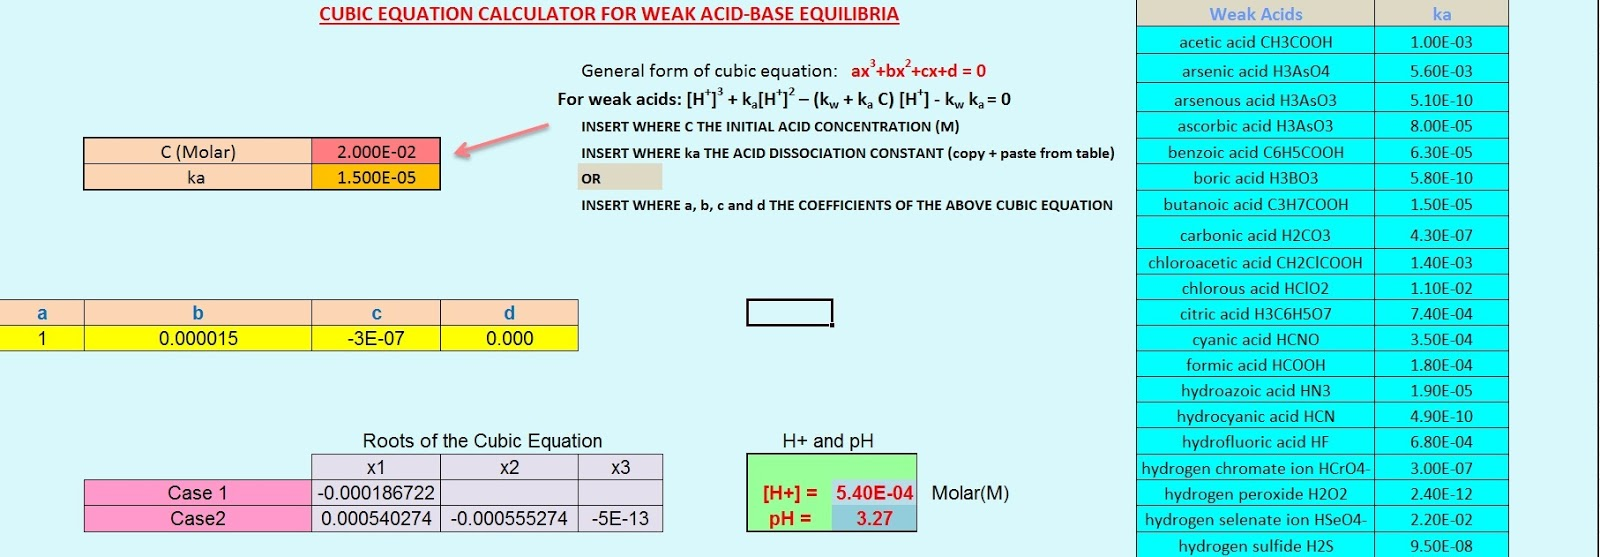 Fig. I.1: The cubic equation calculator for weak acid-base equilibria. By inserting values for the initial acid concentration C(Molar)  and for the acid dissociation constant (values are shown in the table for the most common weak acids) the [H+] and pH values of the solution are calculated